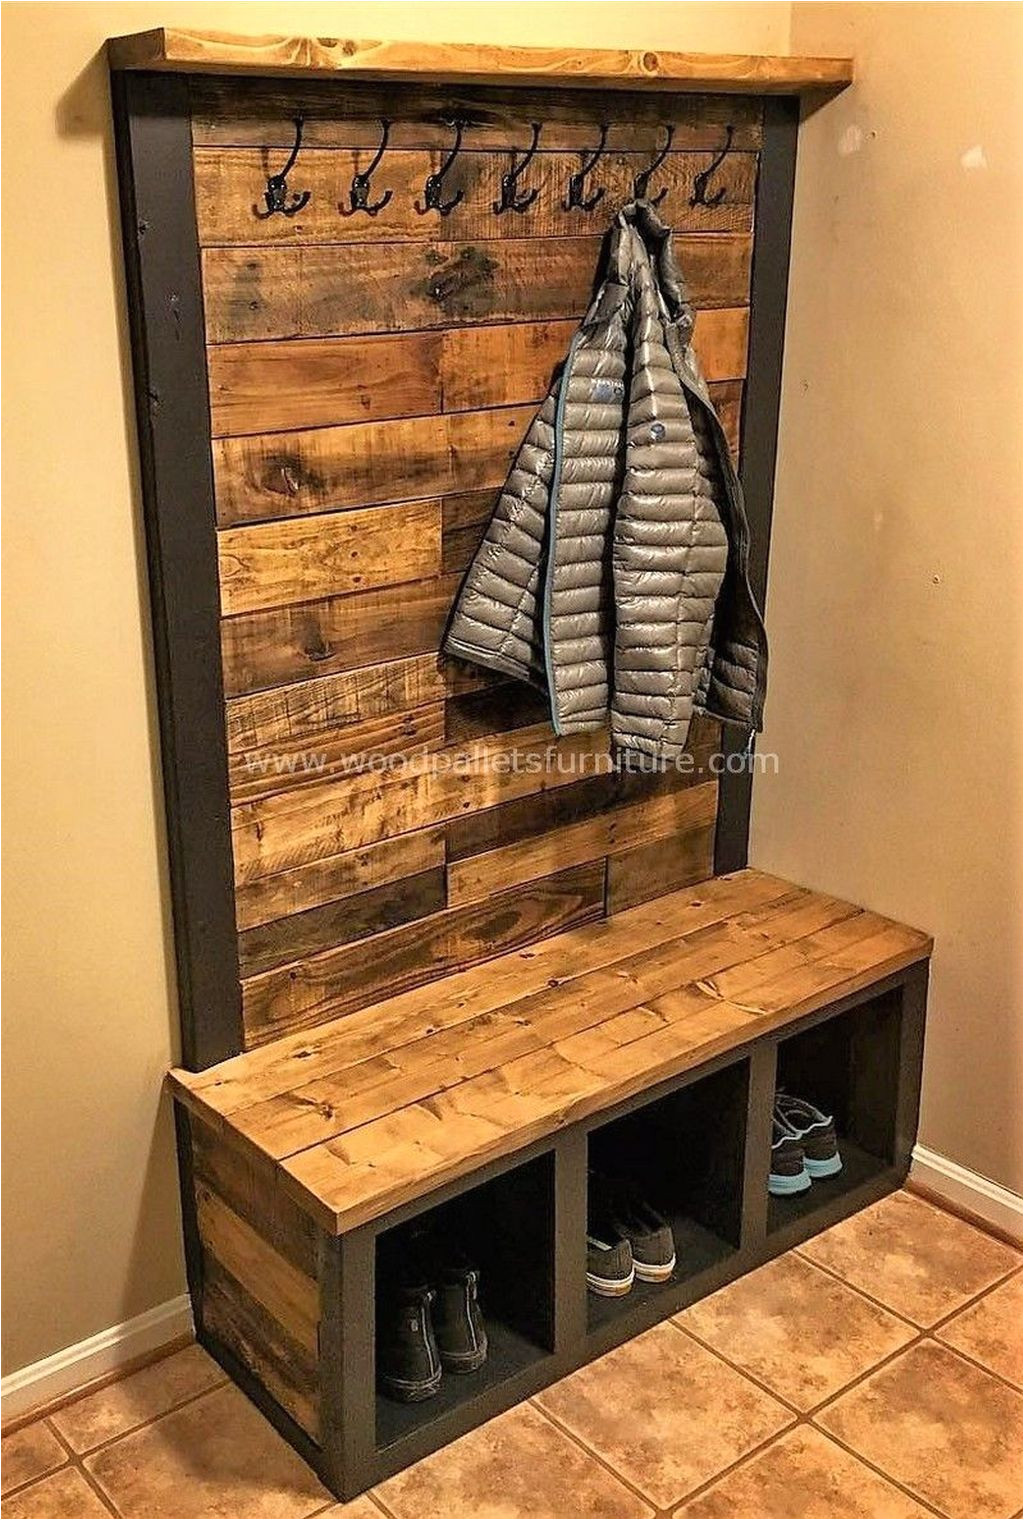 cool 39 awesome wood pallet ideas more at https trend4homy com